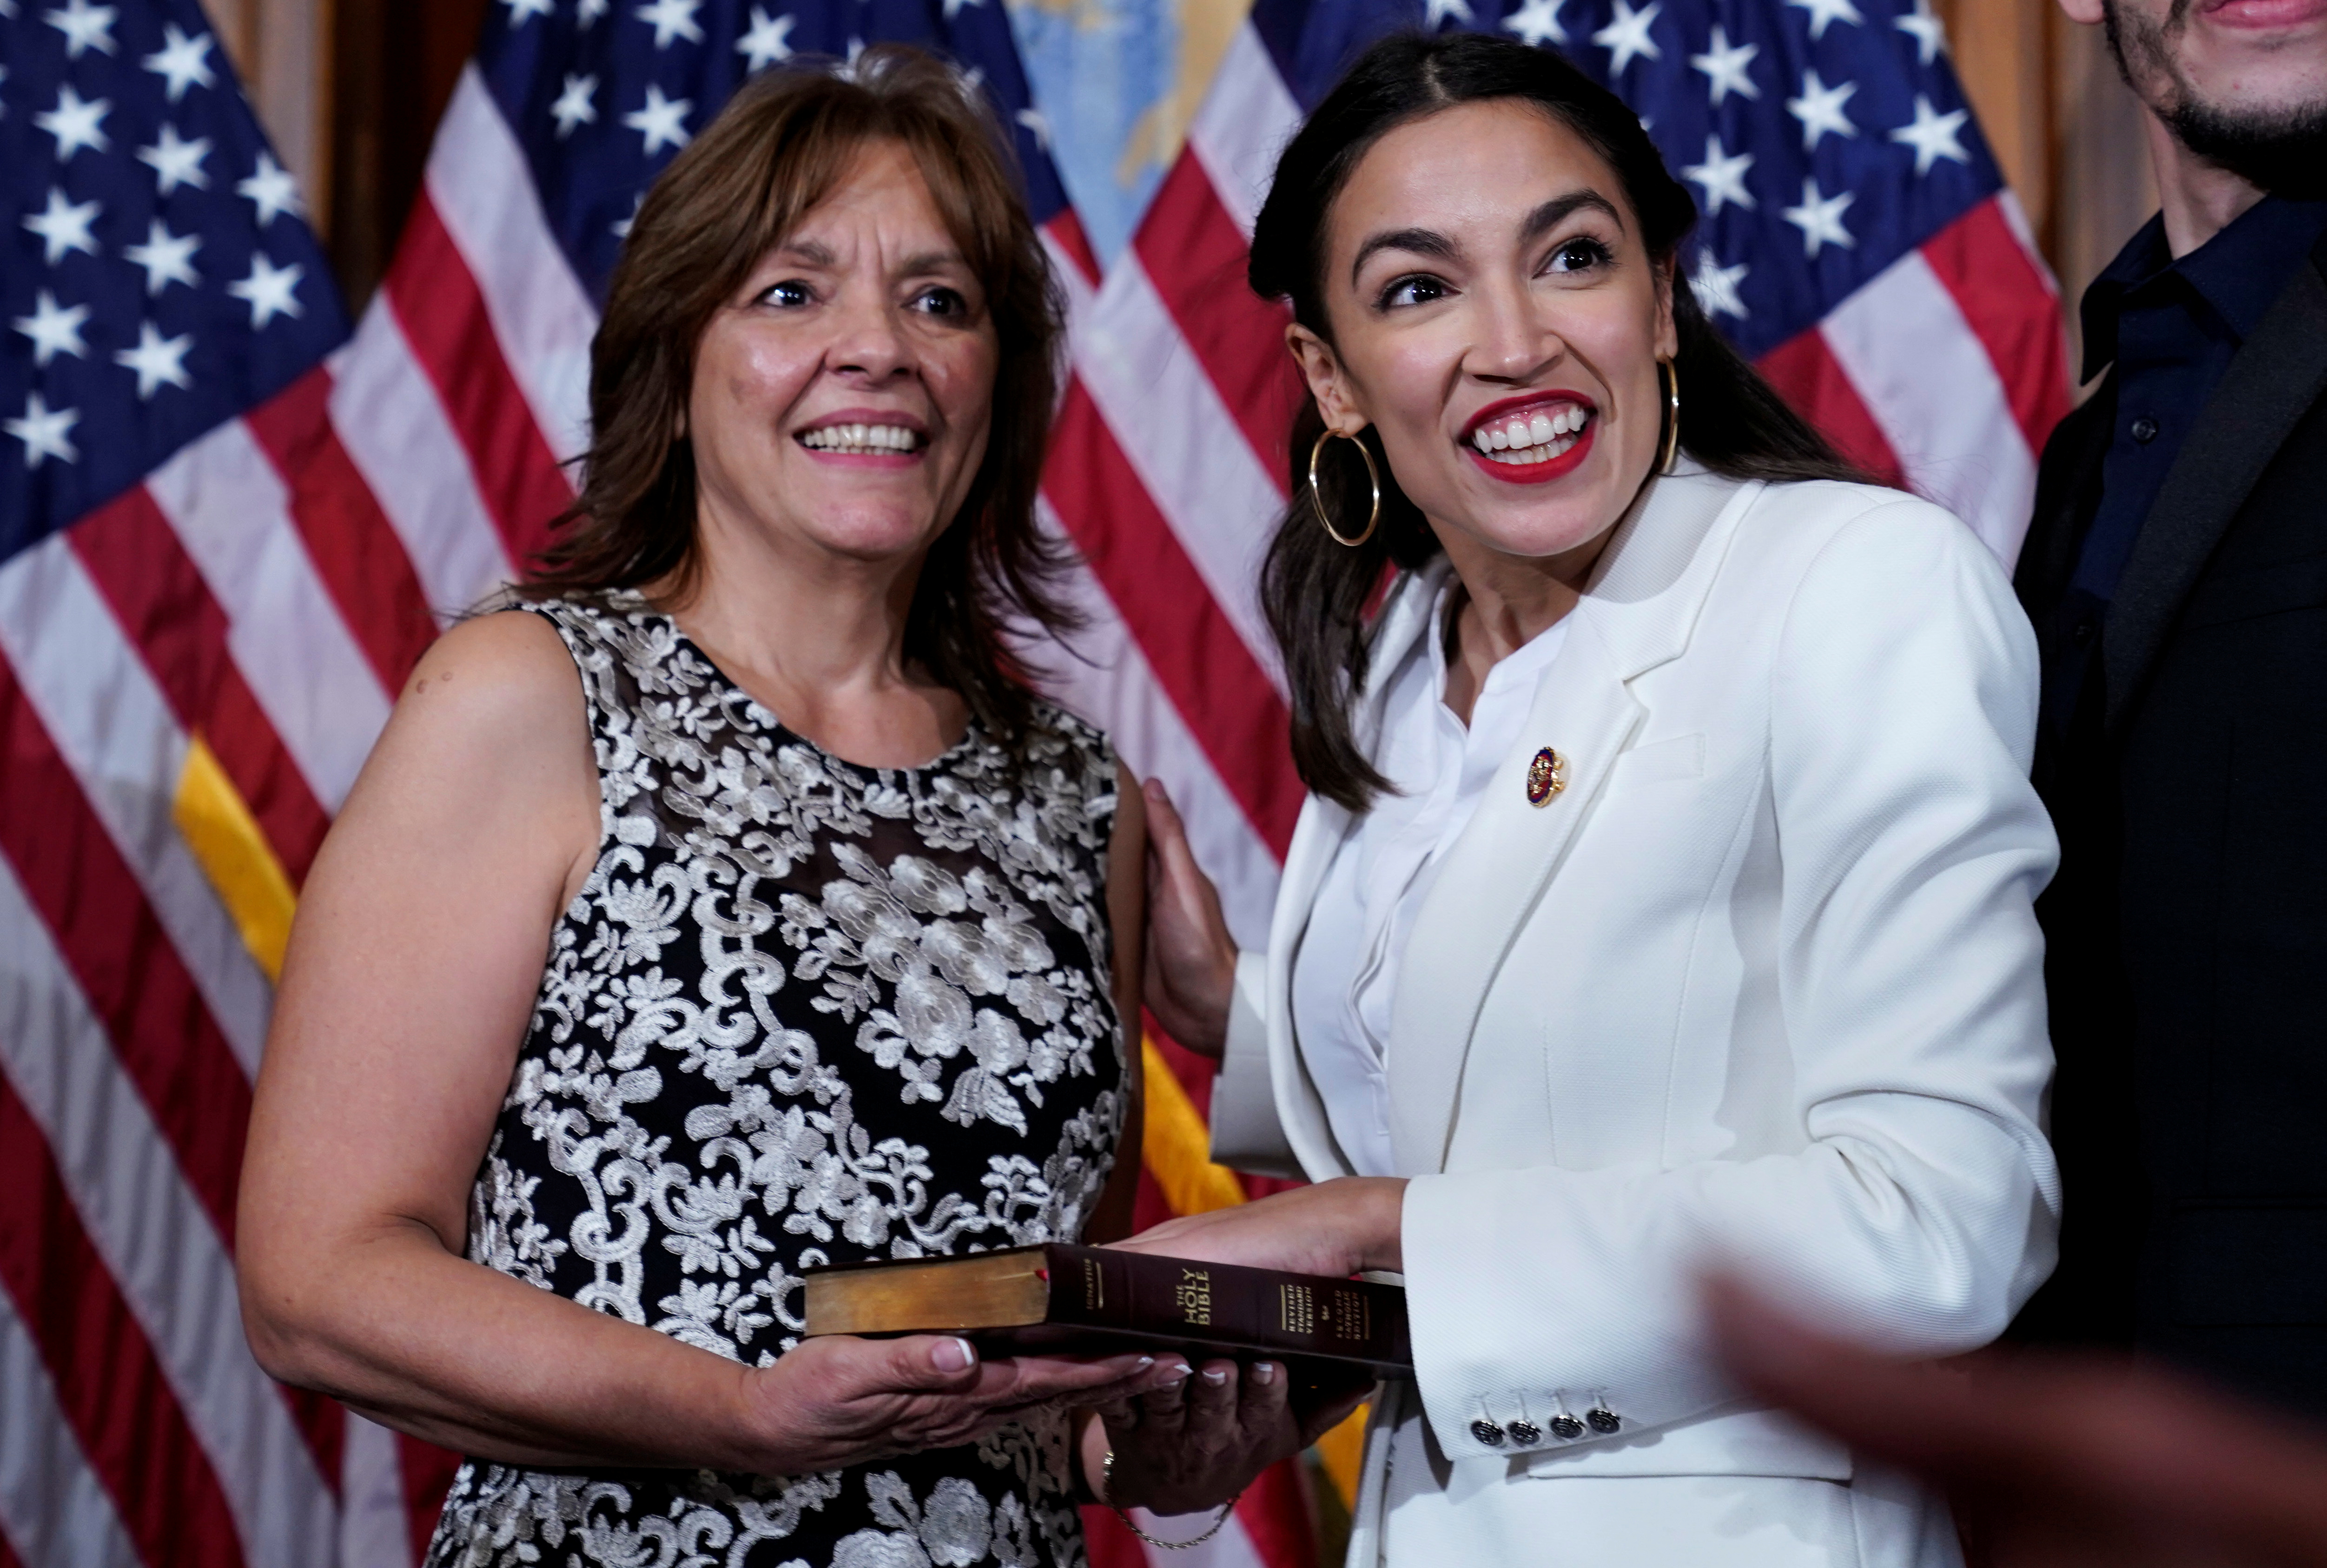 Rep. Alexandria Ocasio-Cortez (D-NY) stands with her mother Blanca Ocasio-Cortez before a ceremonial swearing-in picture on Capitol Hill in Washington